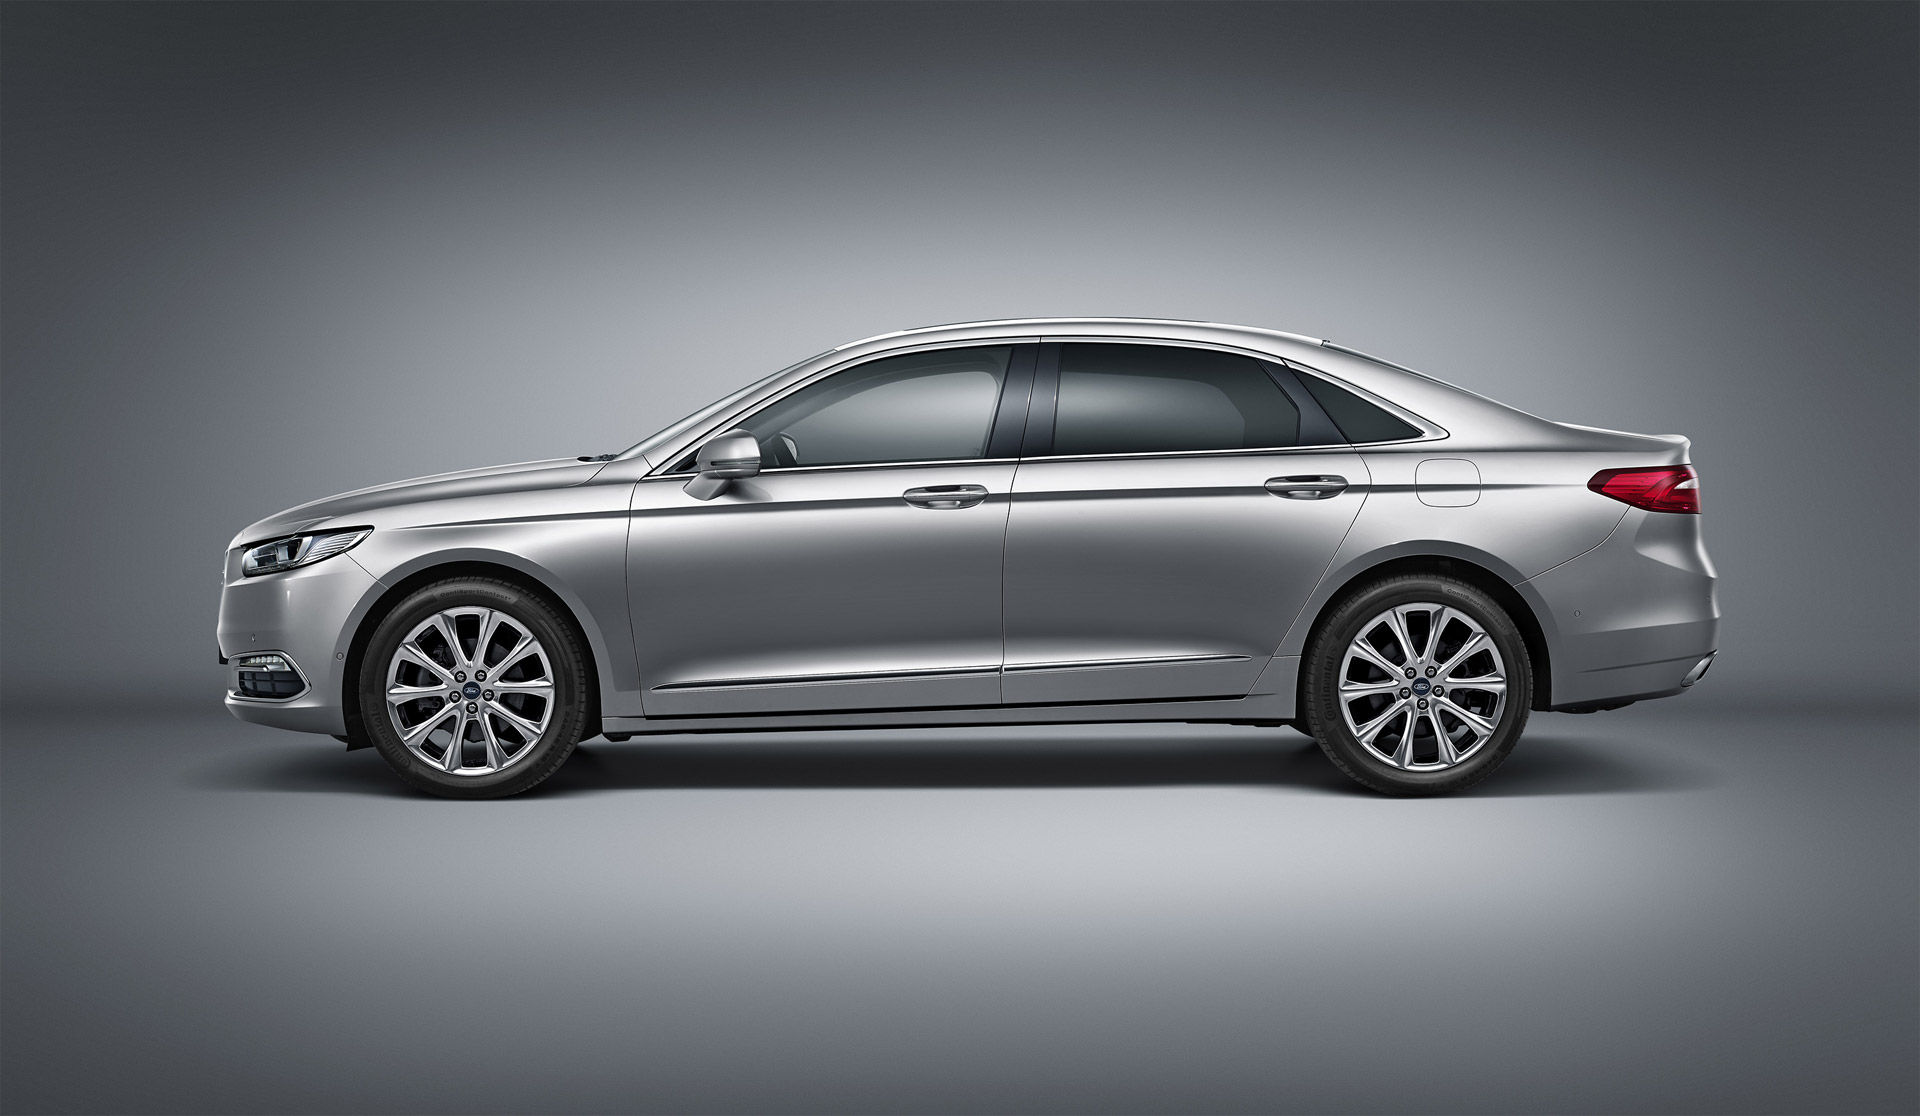 Remarkable New Ford Taurus Revealed Ahead Of 2015 Shanghai Auto Show Wiring Cloud Oideiuggs Outletorg